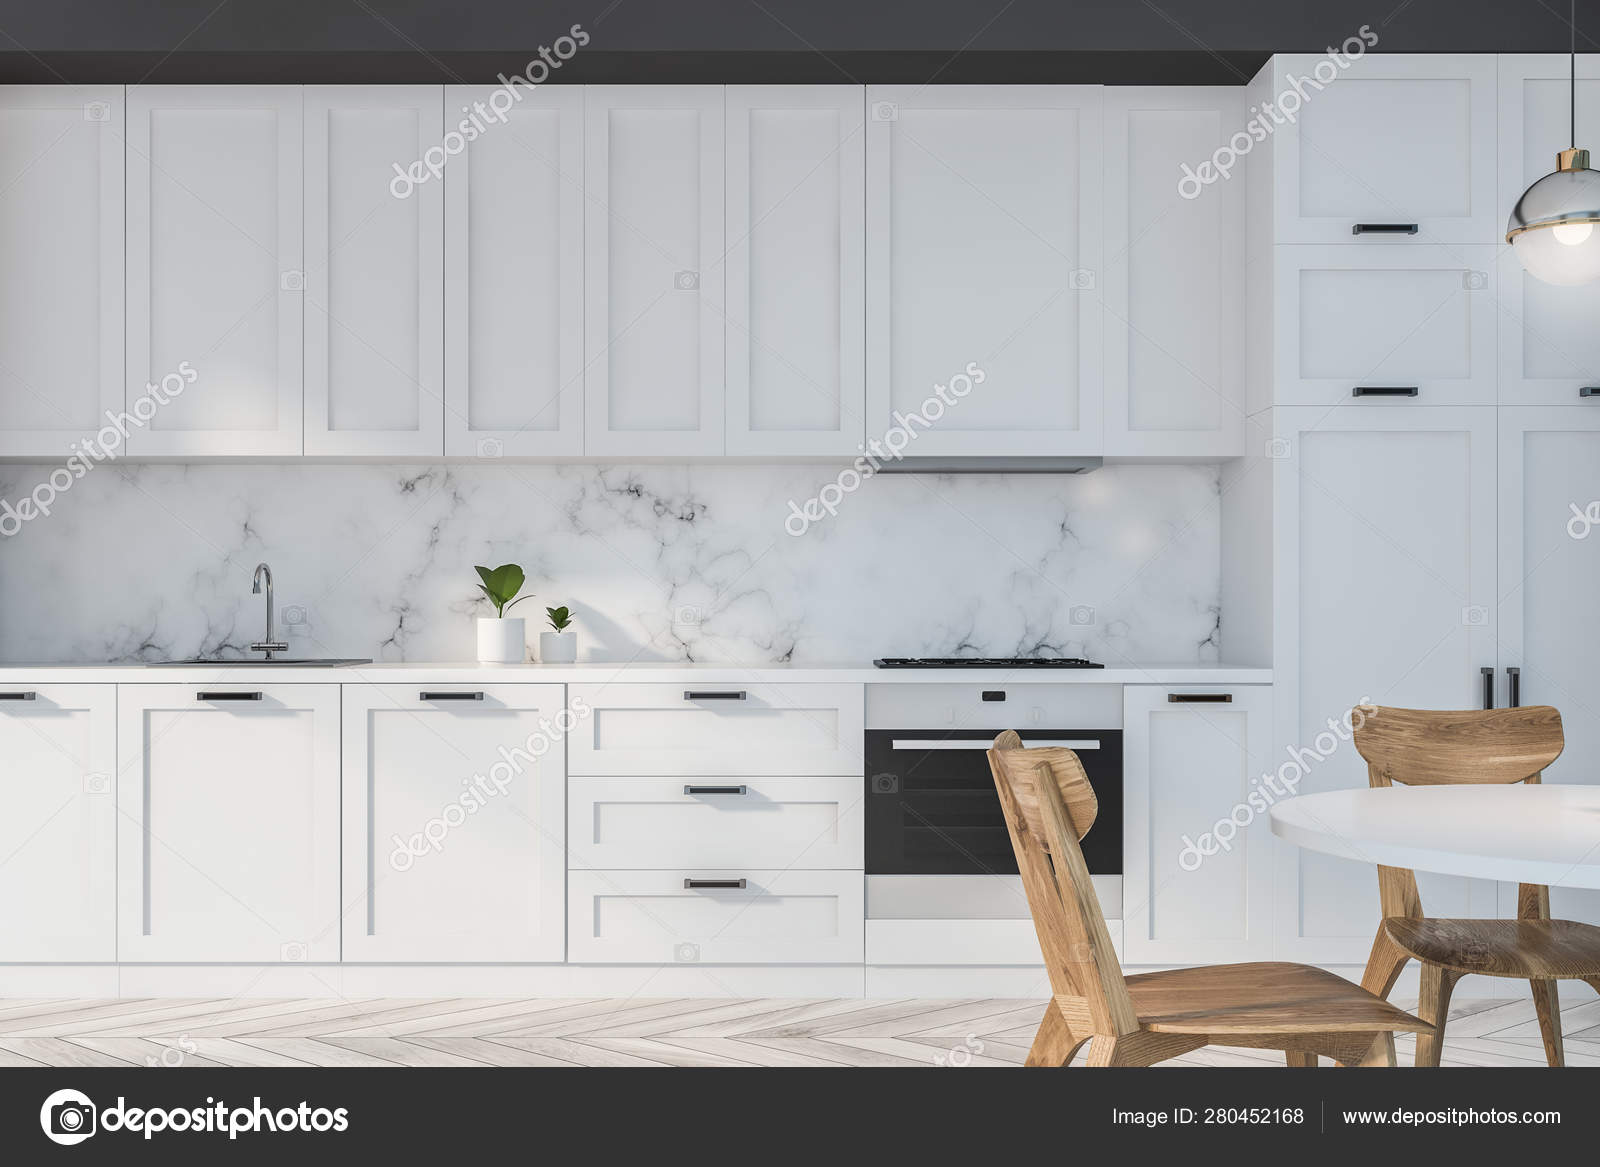 White And Marble Kitchen With Table Stock Photo C Denisismagilov 280452168